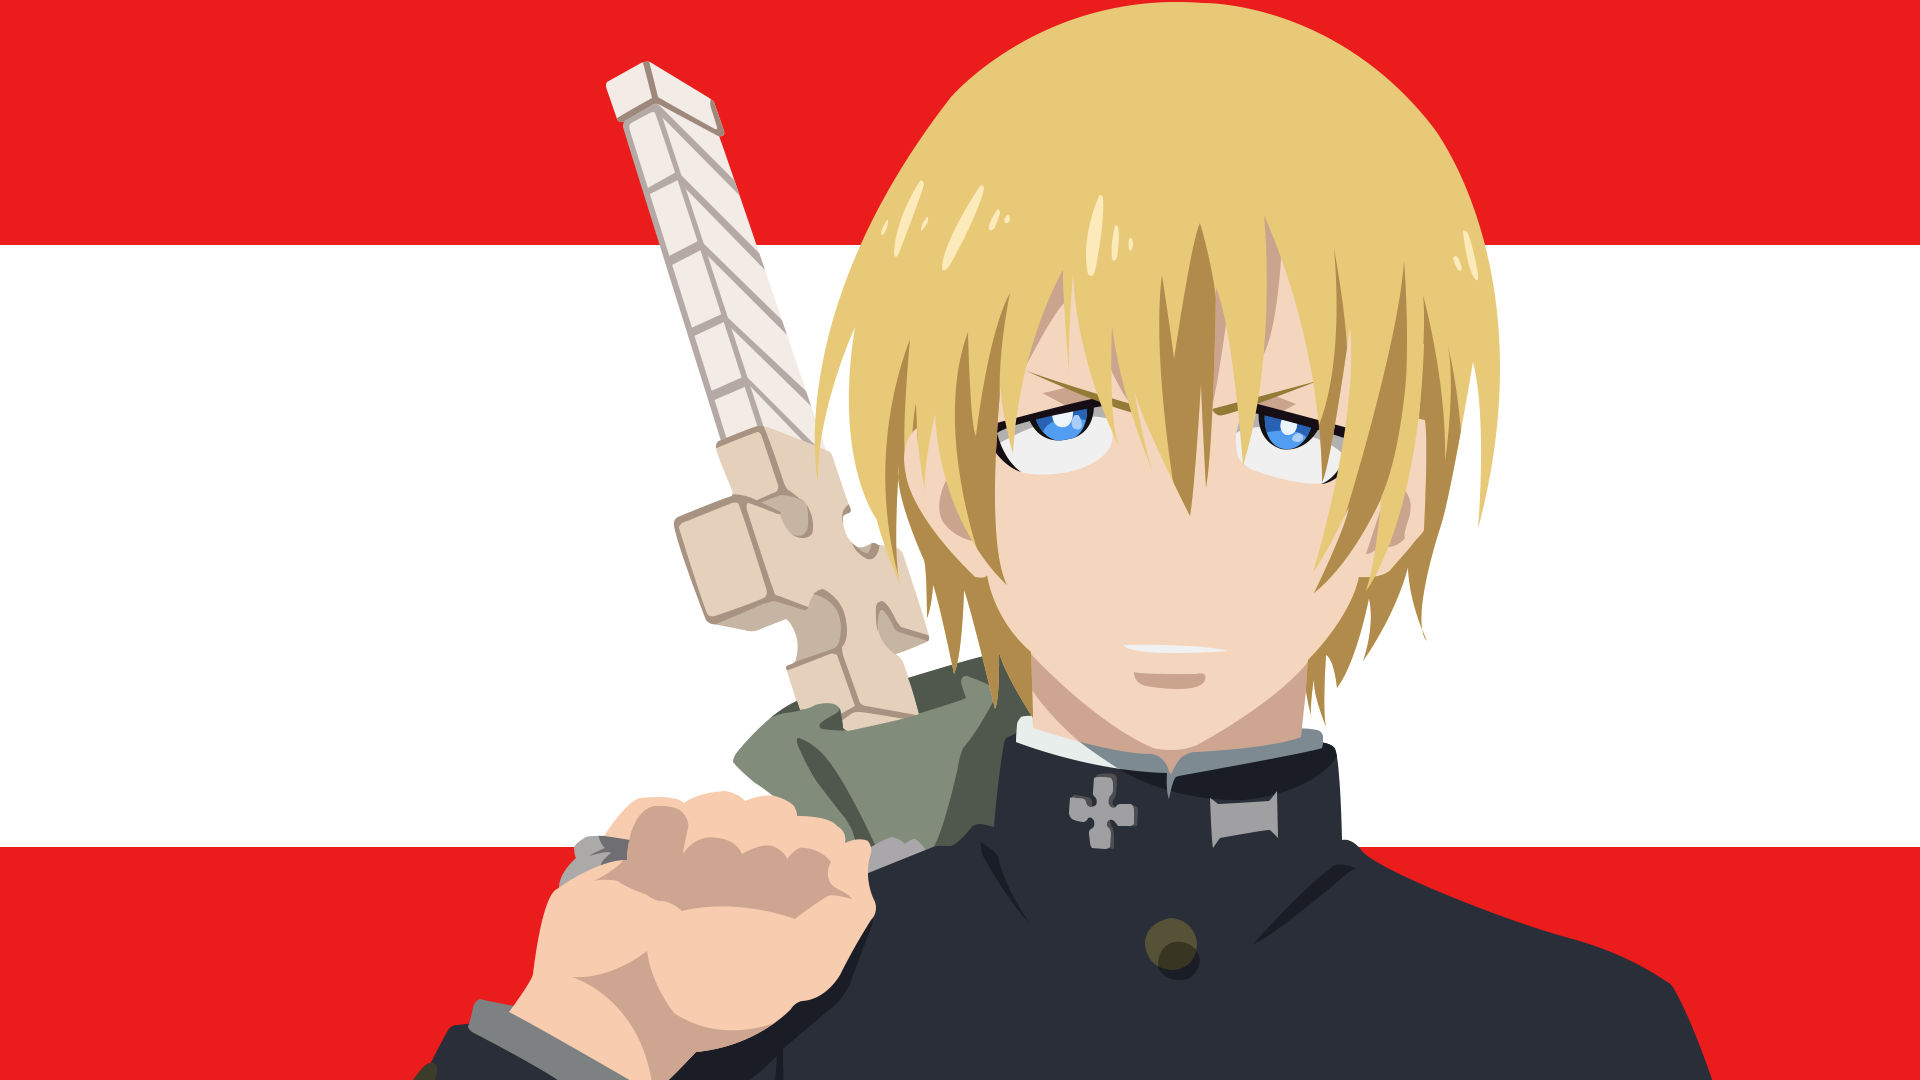 Arthur Boyle From Fire Force Minimalist Wallpaper For